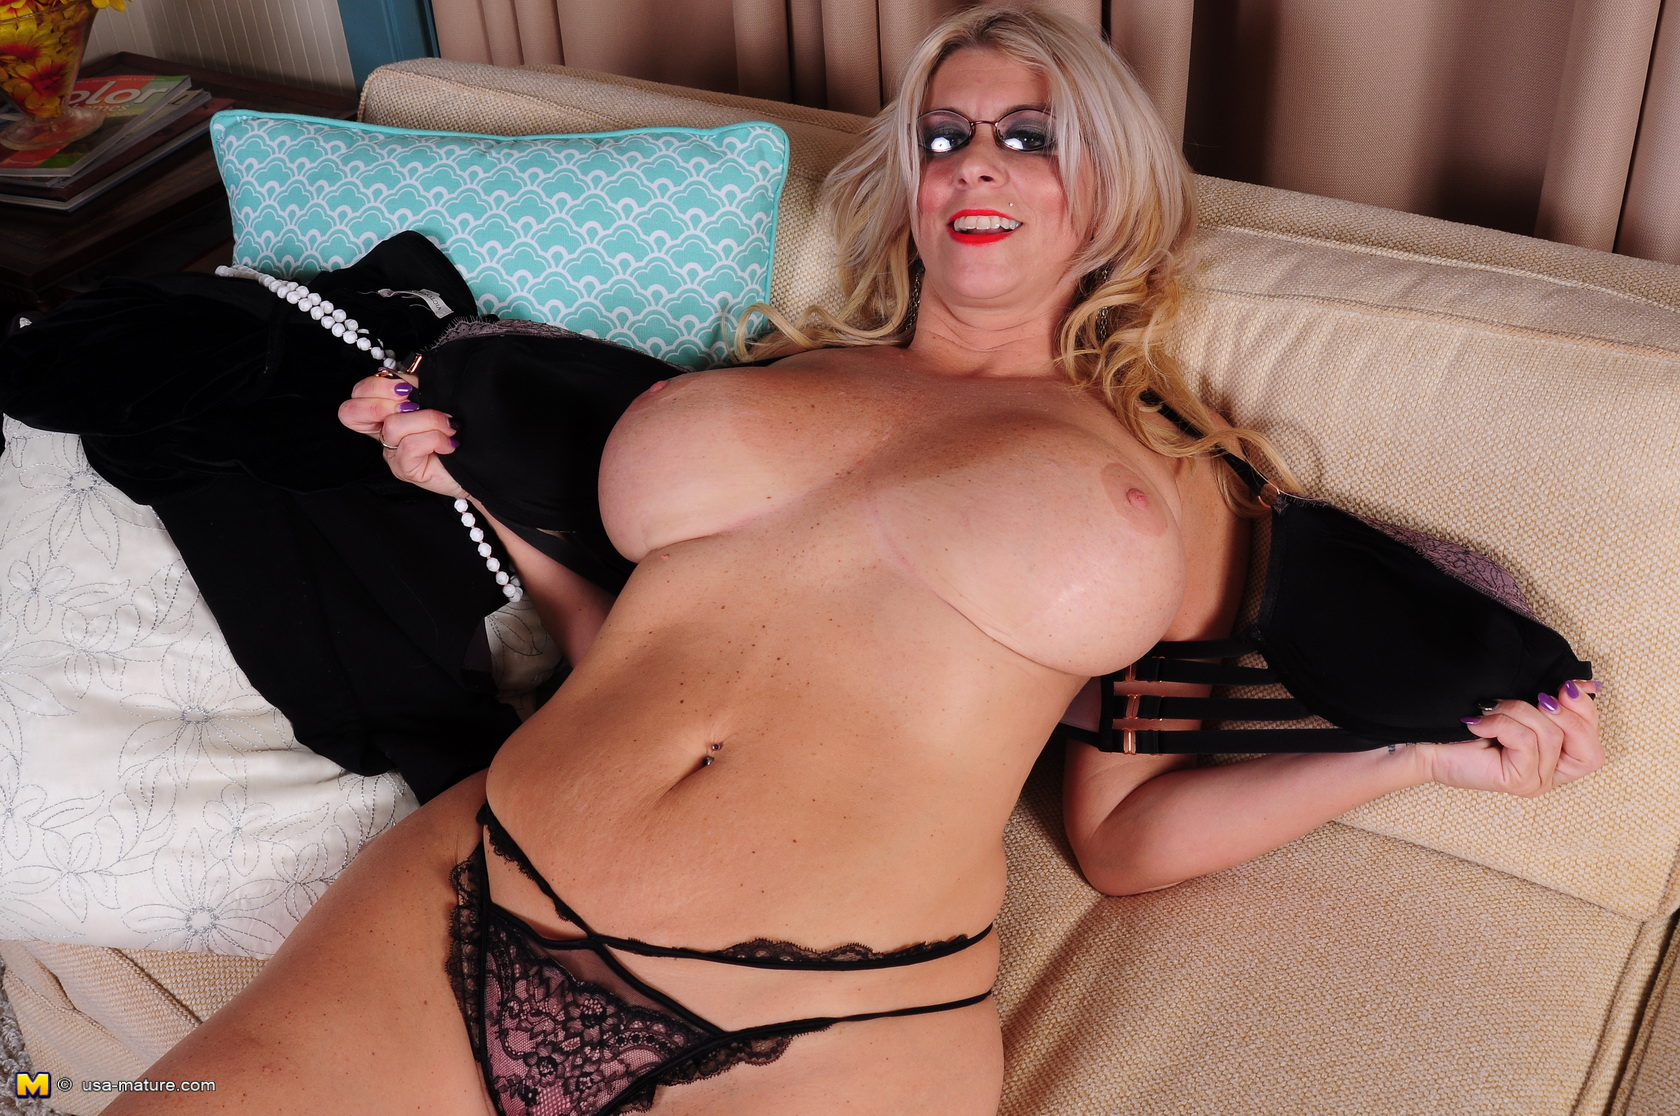 Fat milf playing with herself